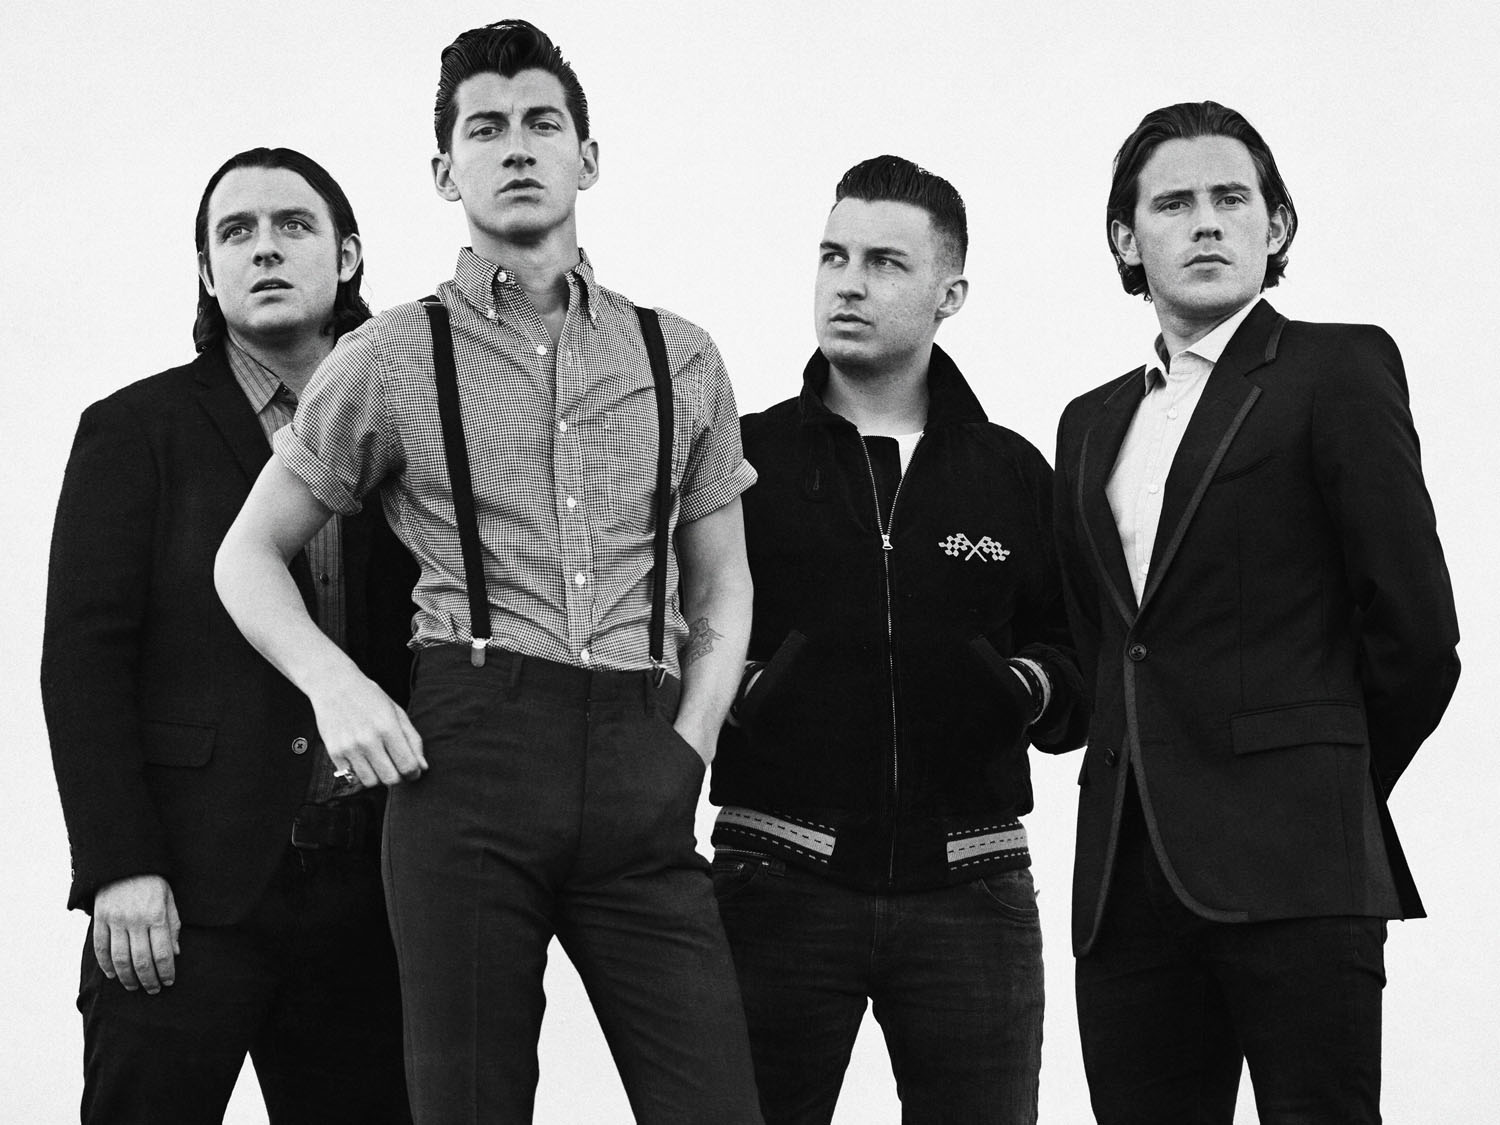 Arctic Monkeys are set to release a new album in 2018